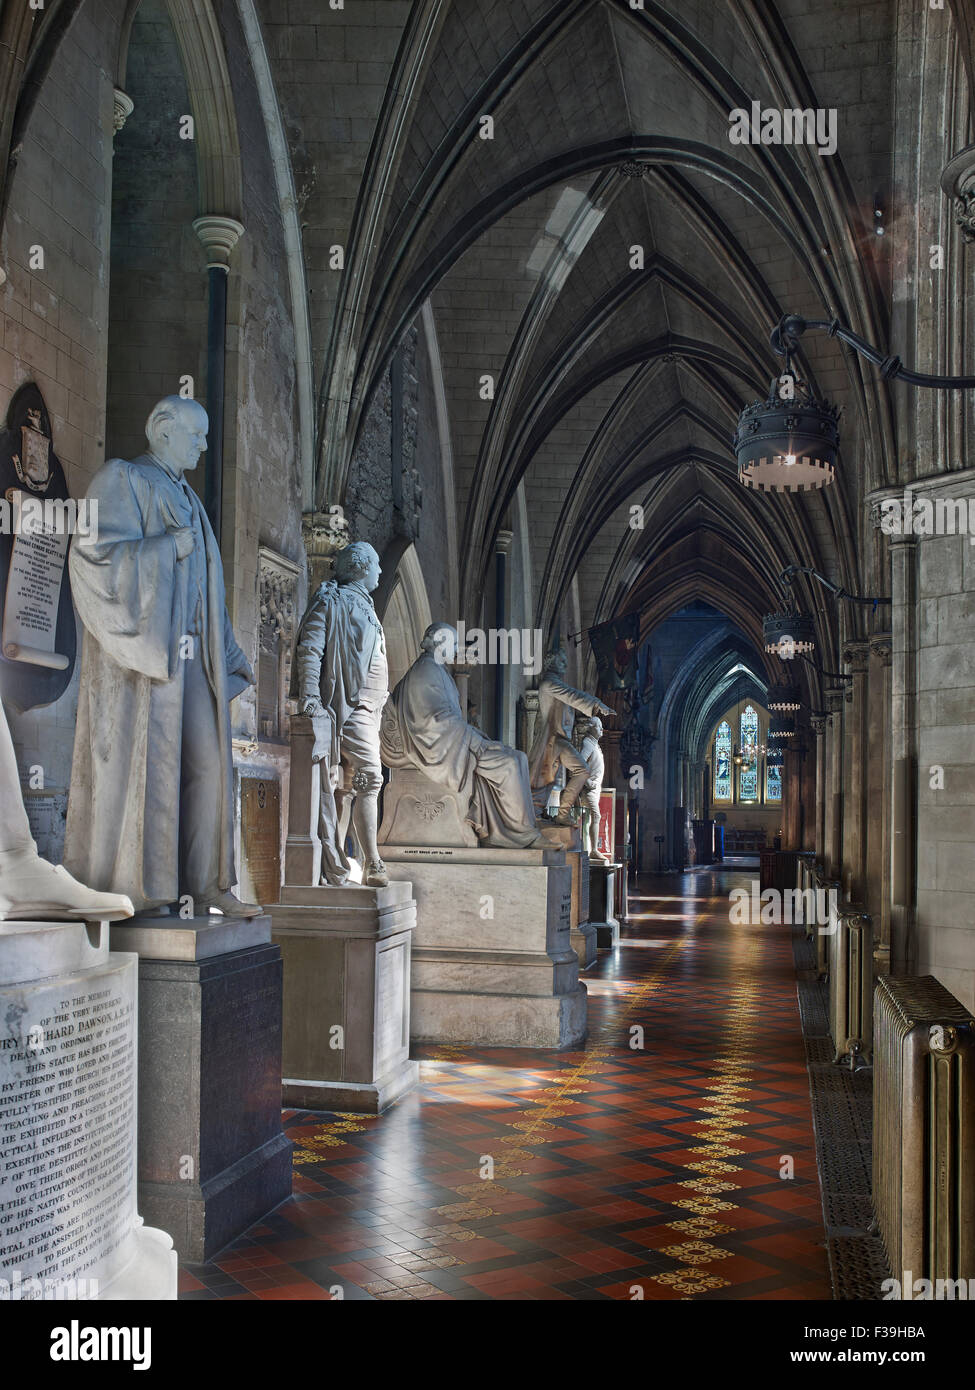 St Patrick's Cathedral Dublin nave aisle - Stock Image